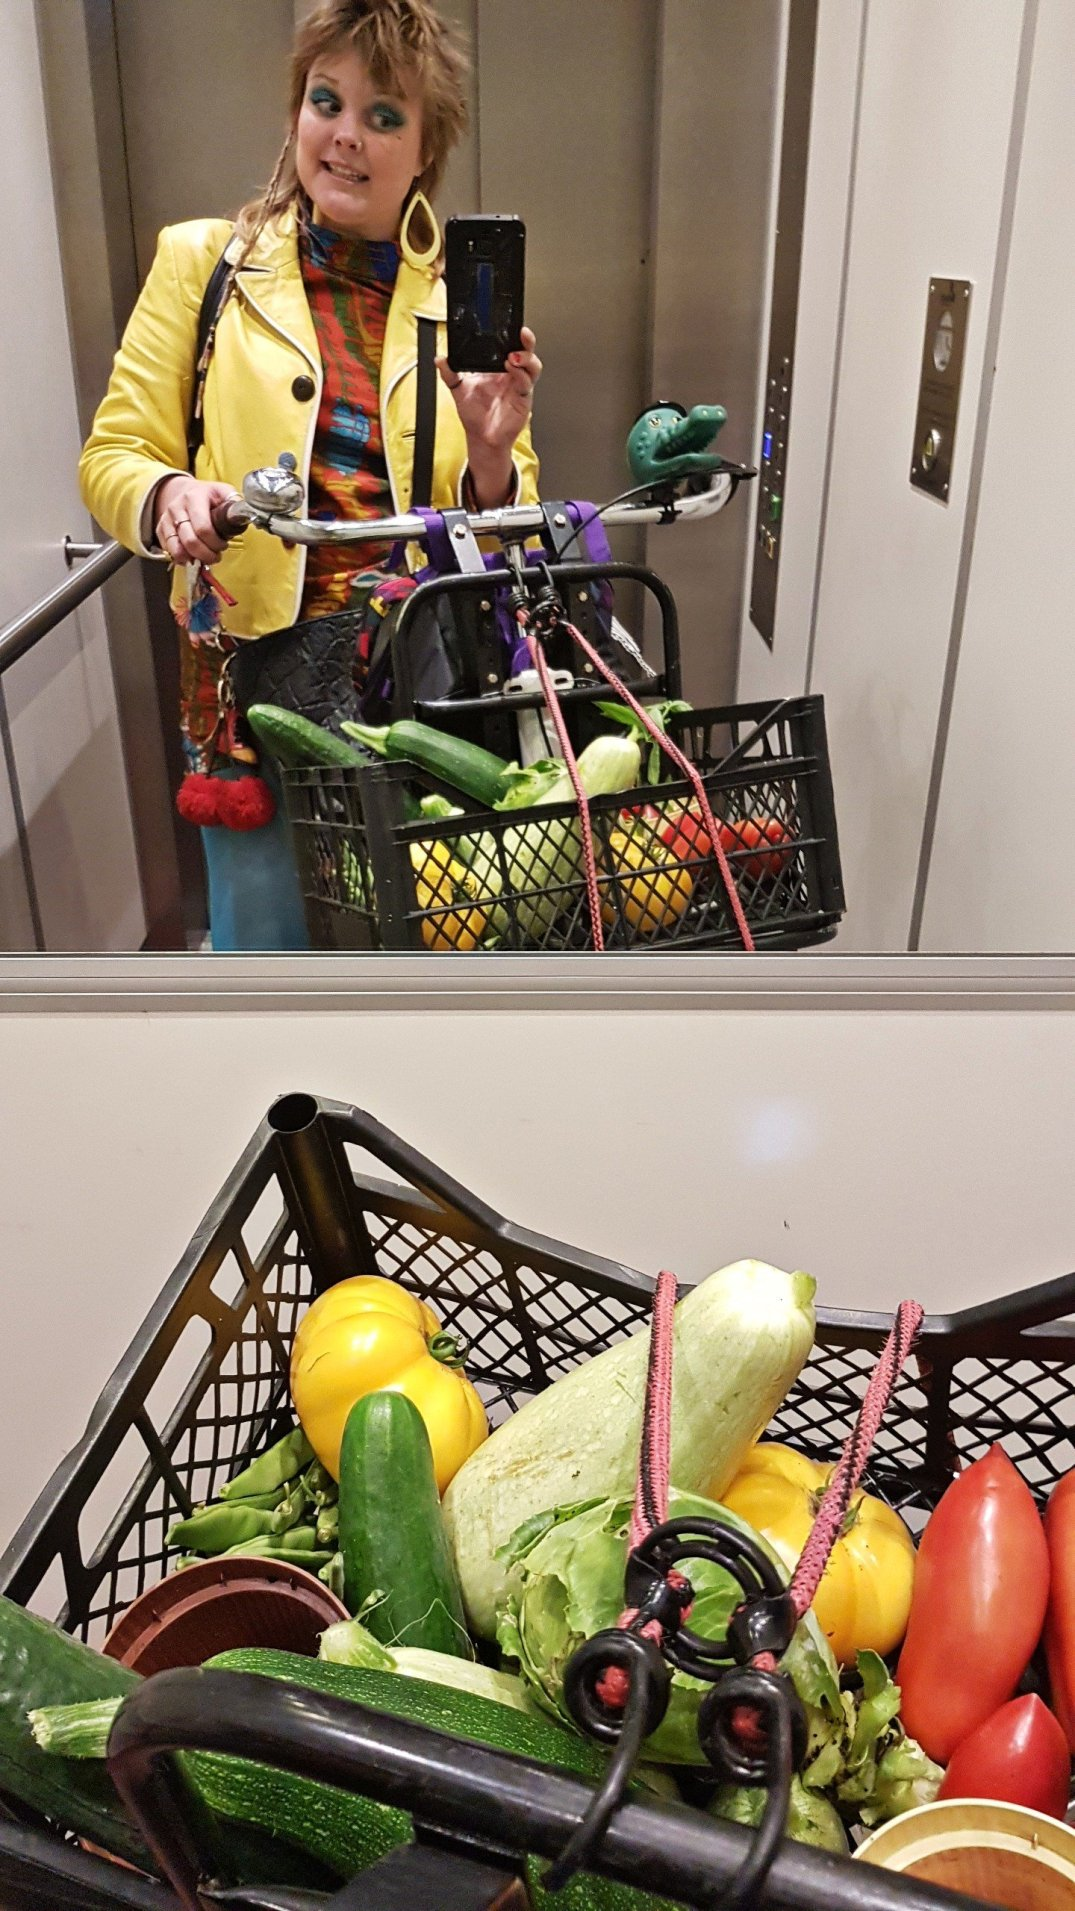 Vegetables in the elevator